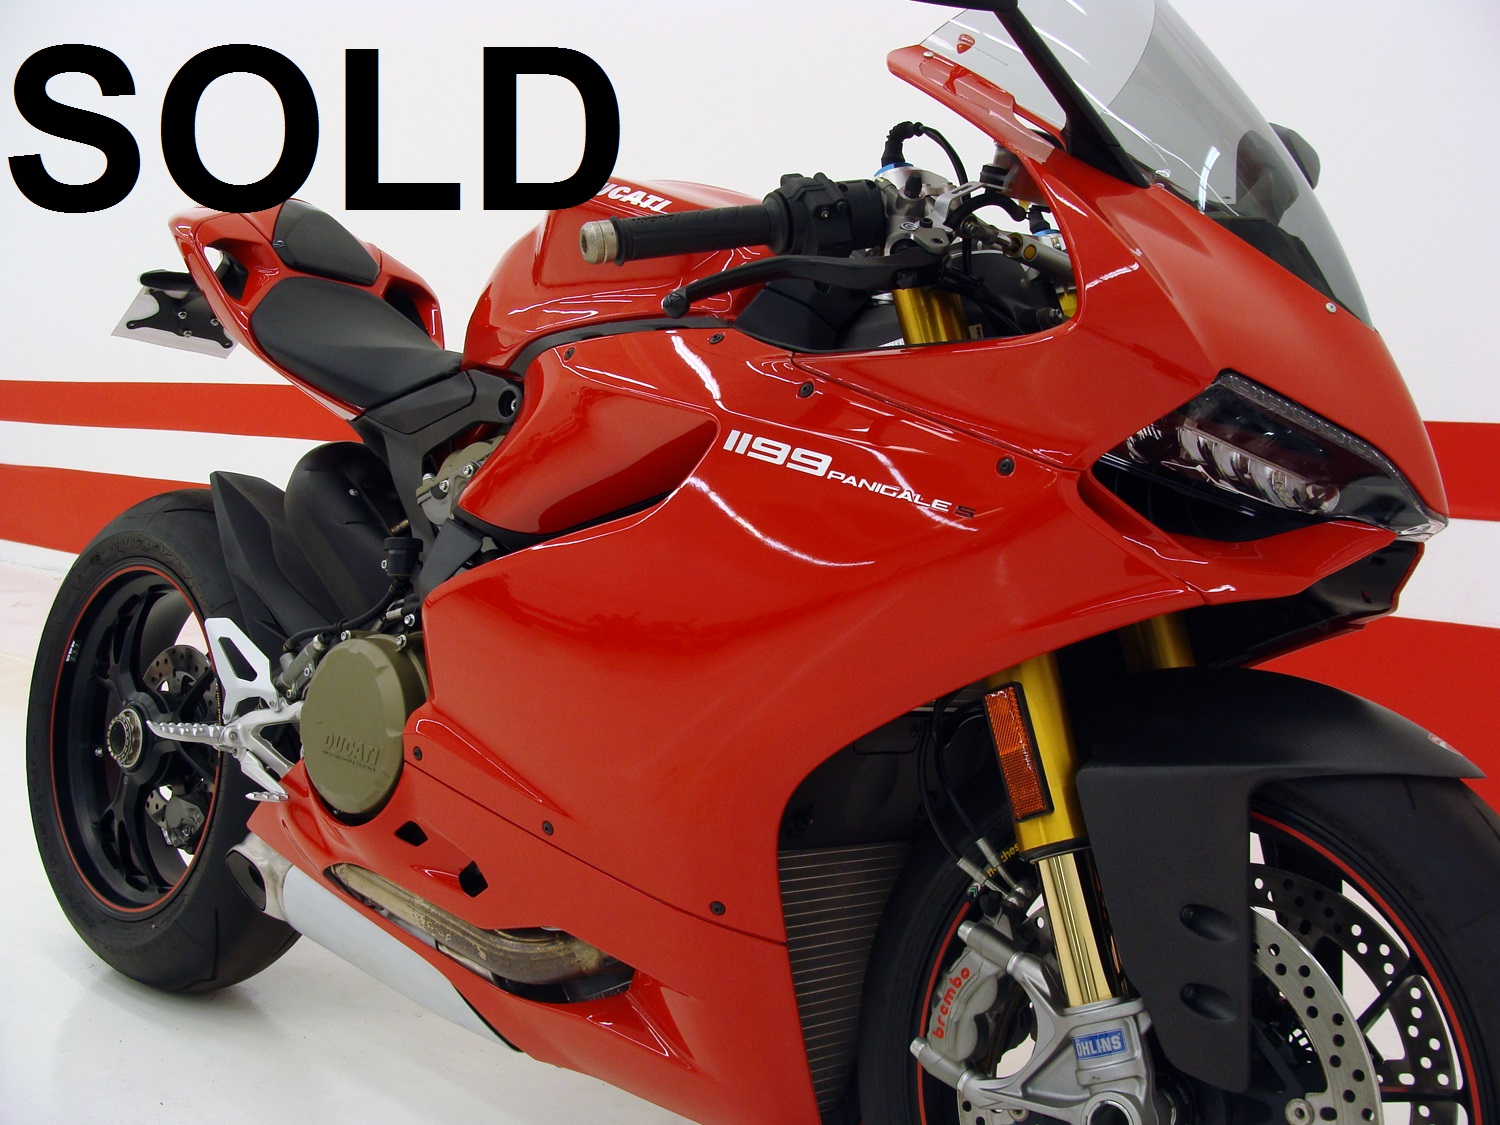 Ducati 1199 Panigale S (ABS) / RARE FIND ONLY 44 MILES